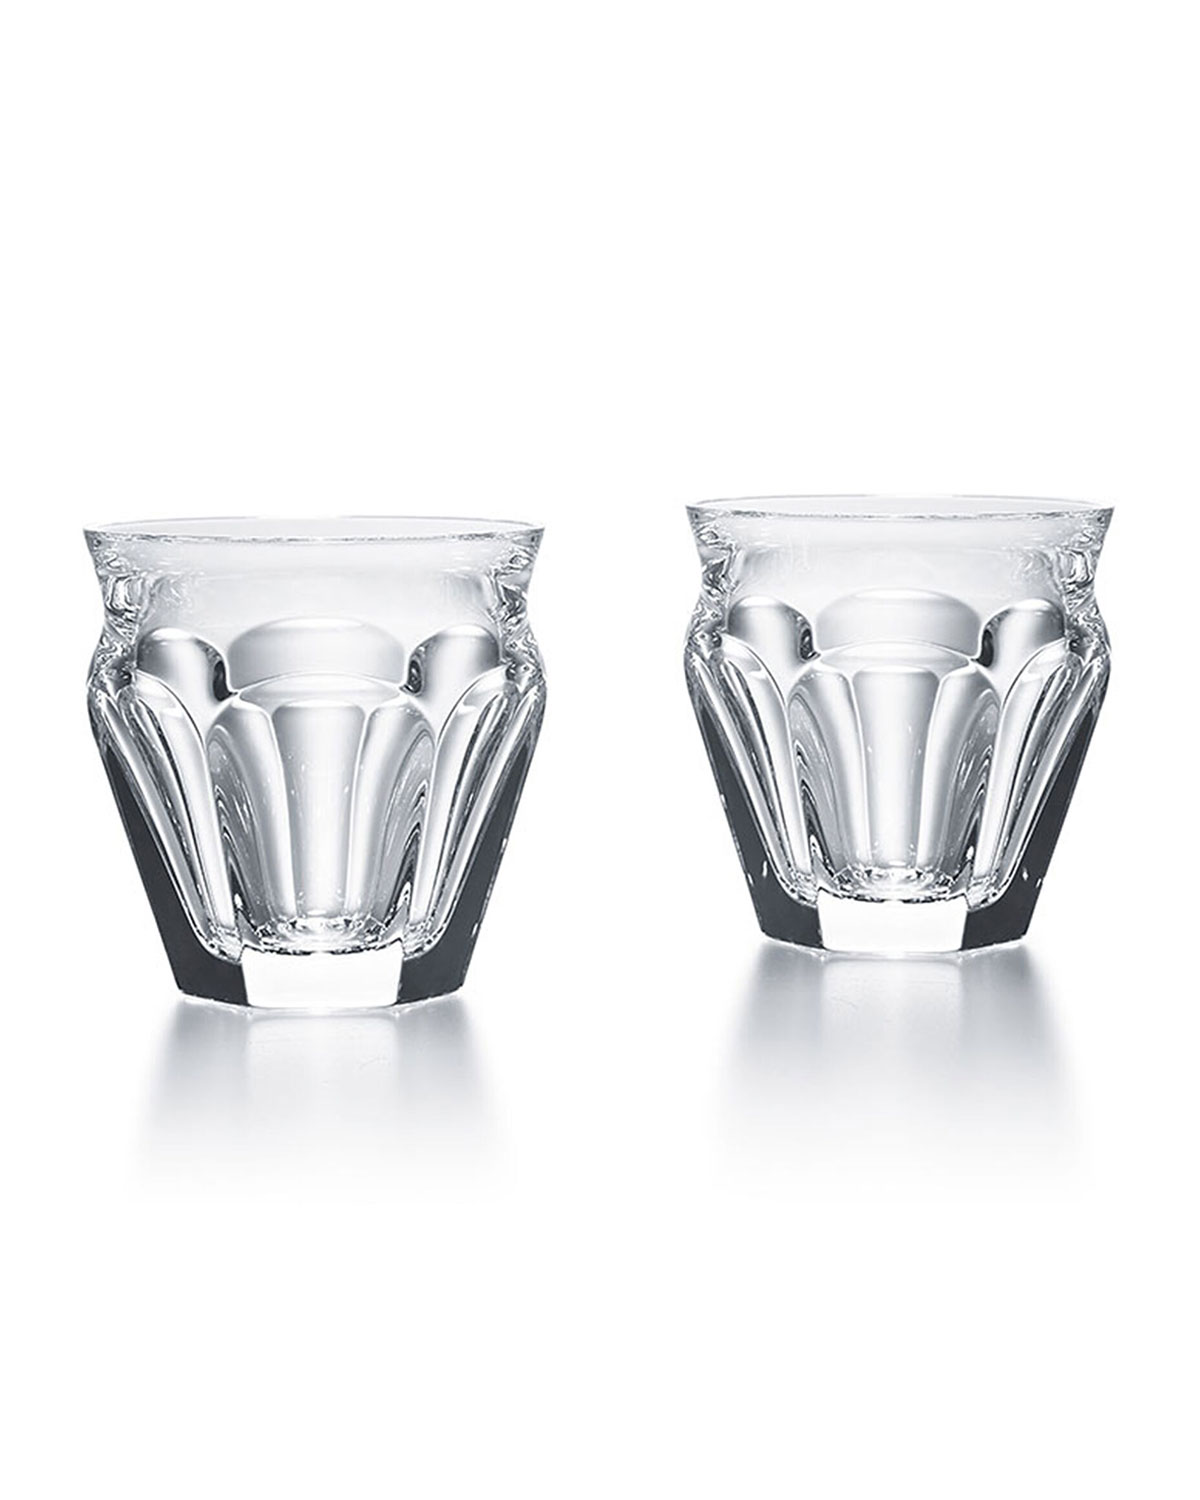 Baccarat Harcourt Tallyrand Glasses, Set of 2